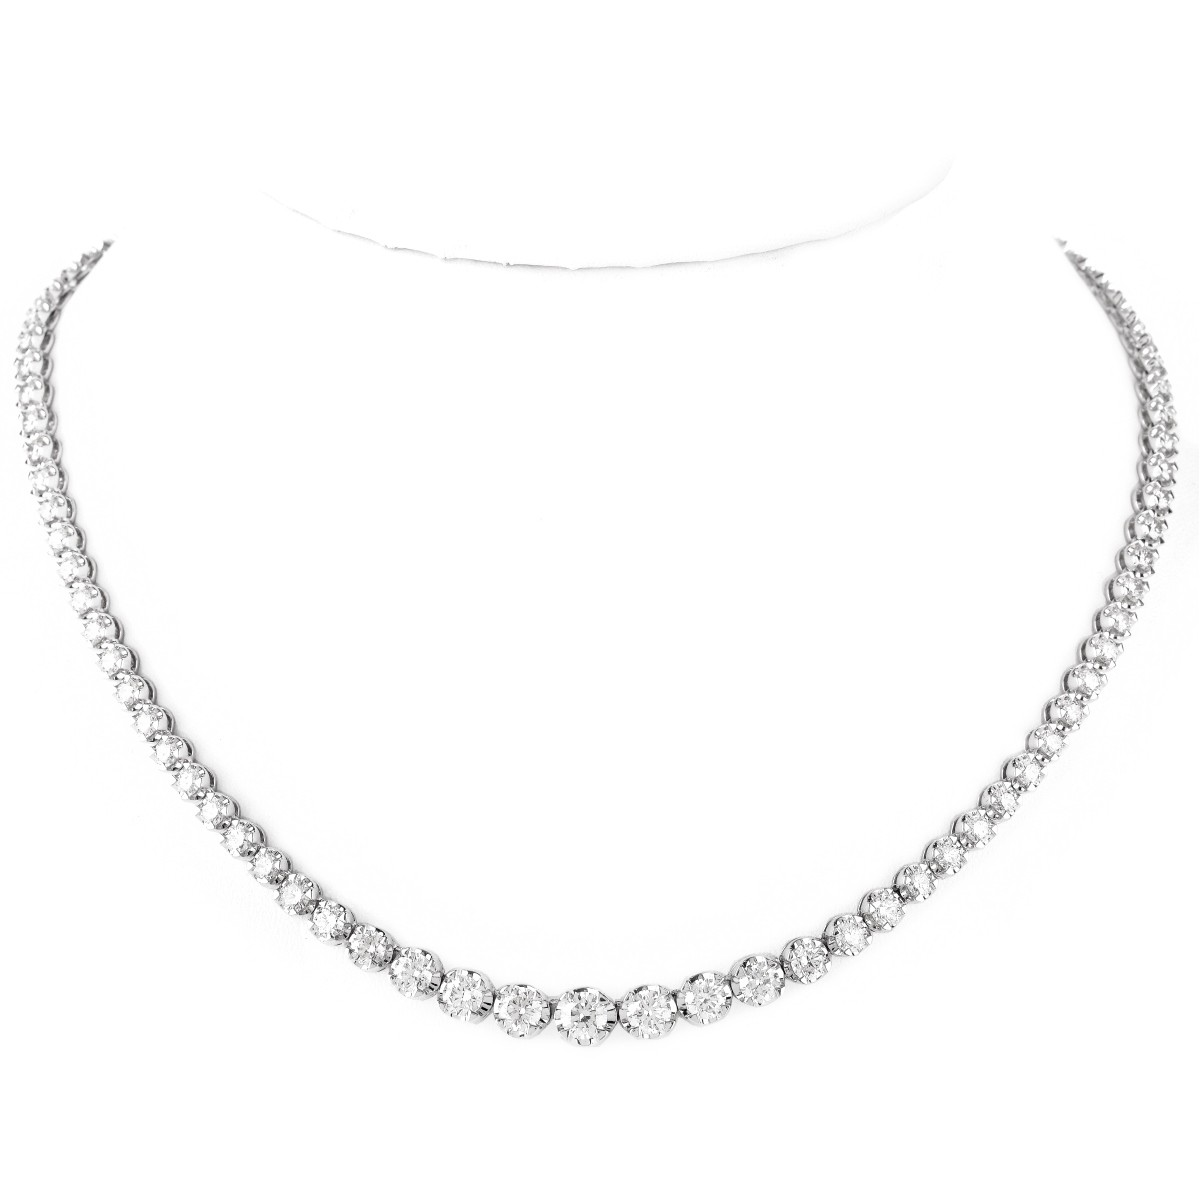 Diamond and 18K Gold Riviera Necklace